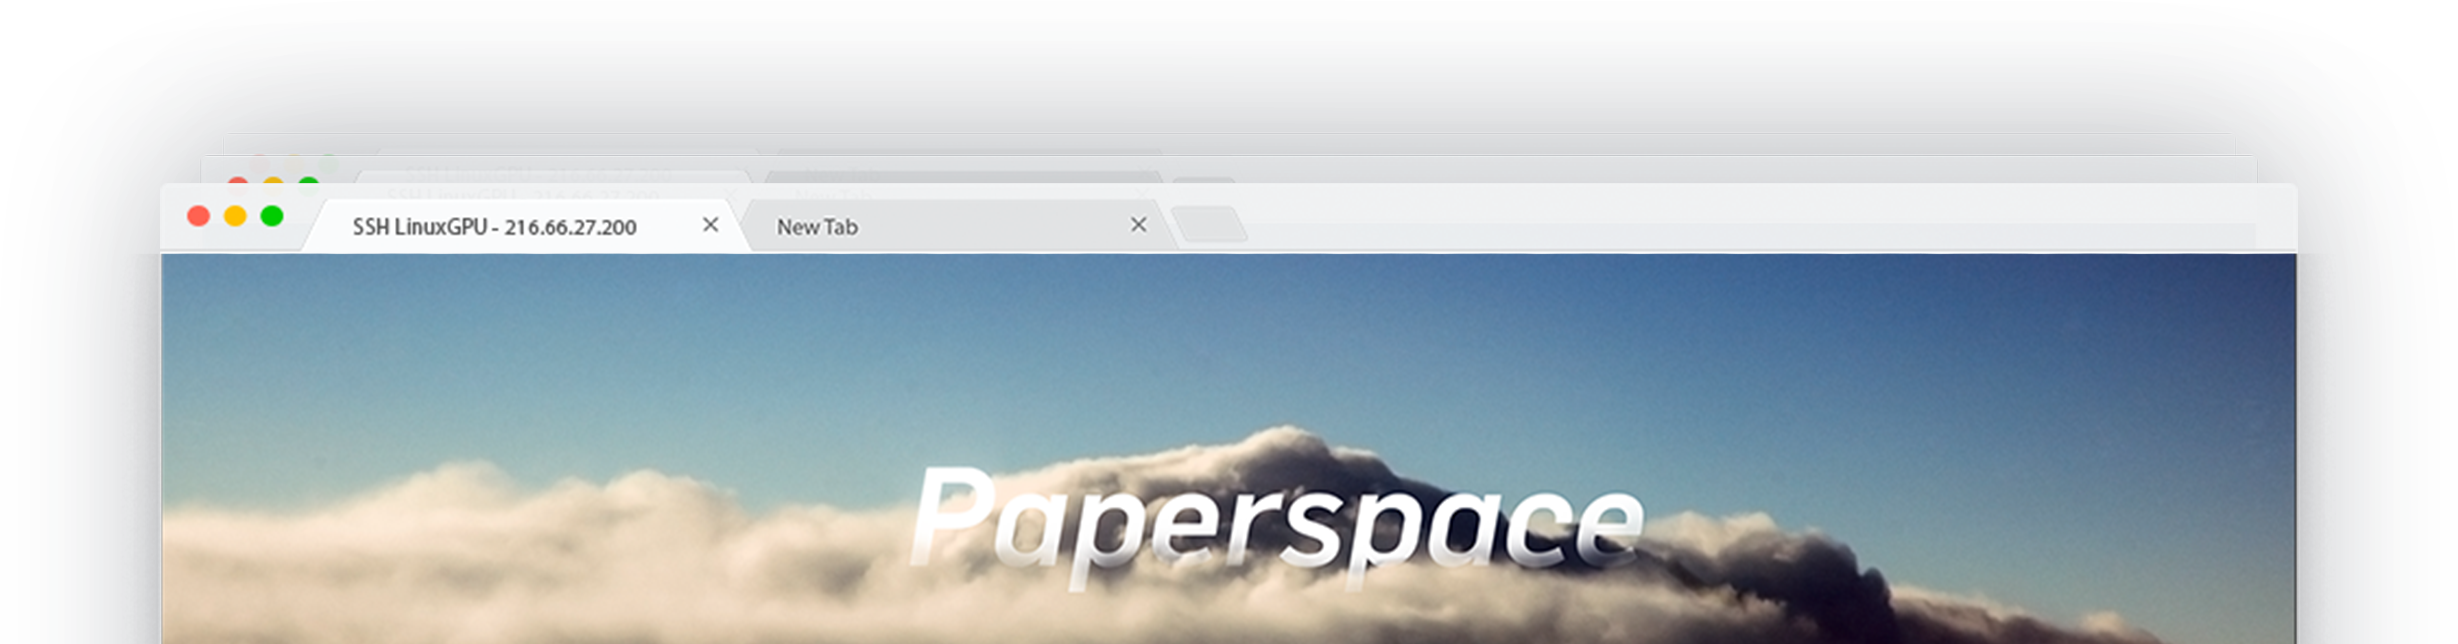 Paperspace in web browser